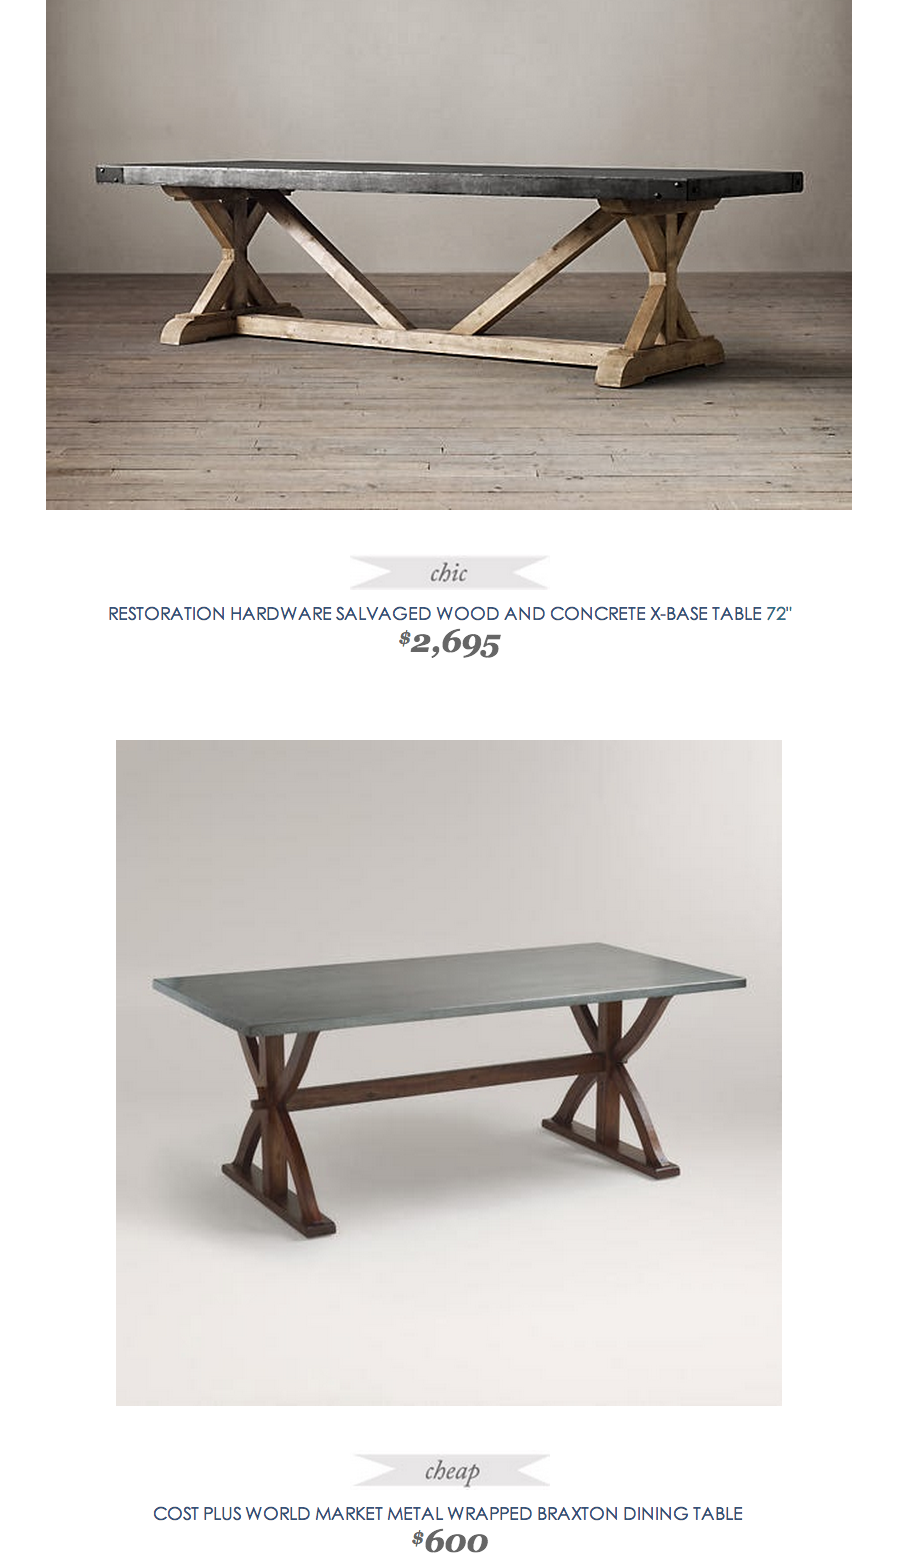 Restoration Hardware Salvaged Wood And Concrete X Base Table